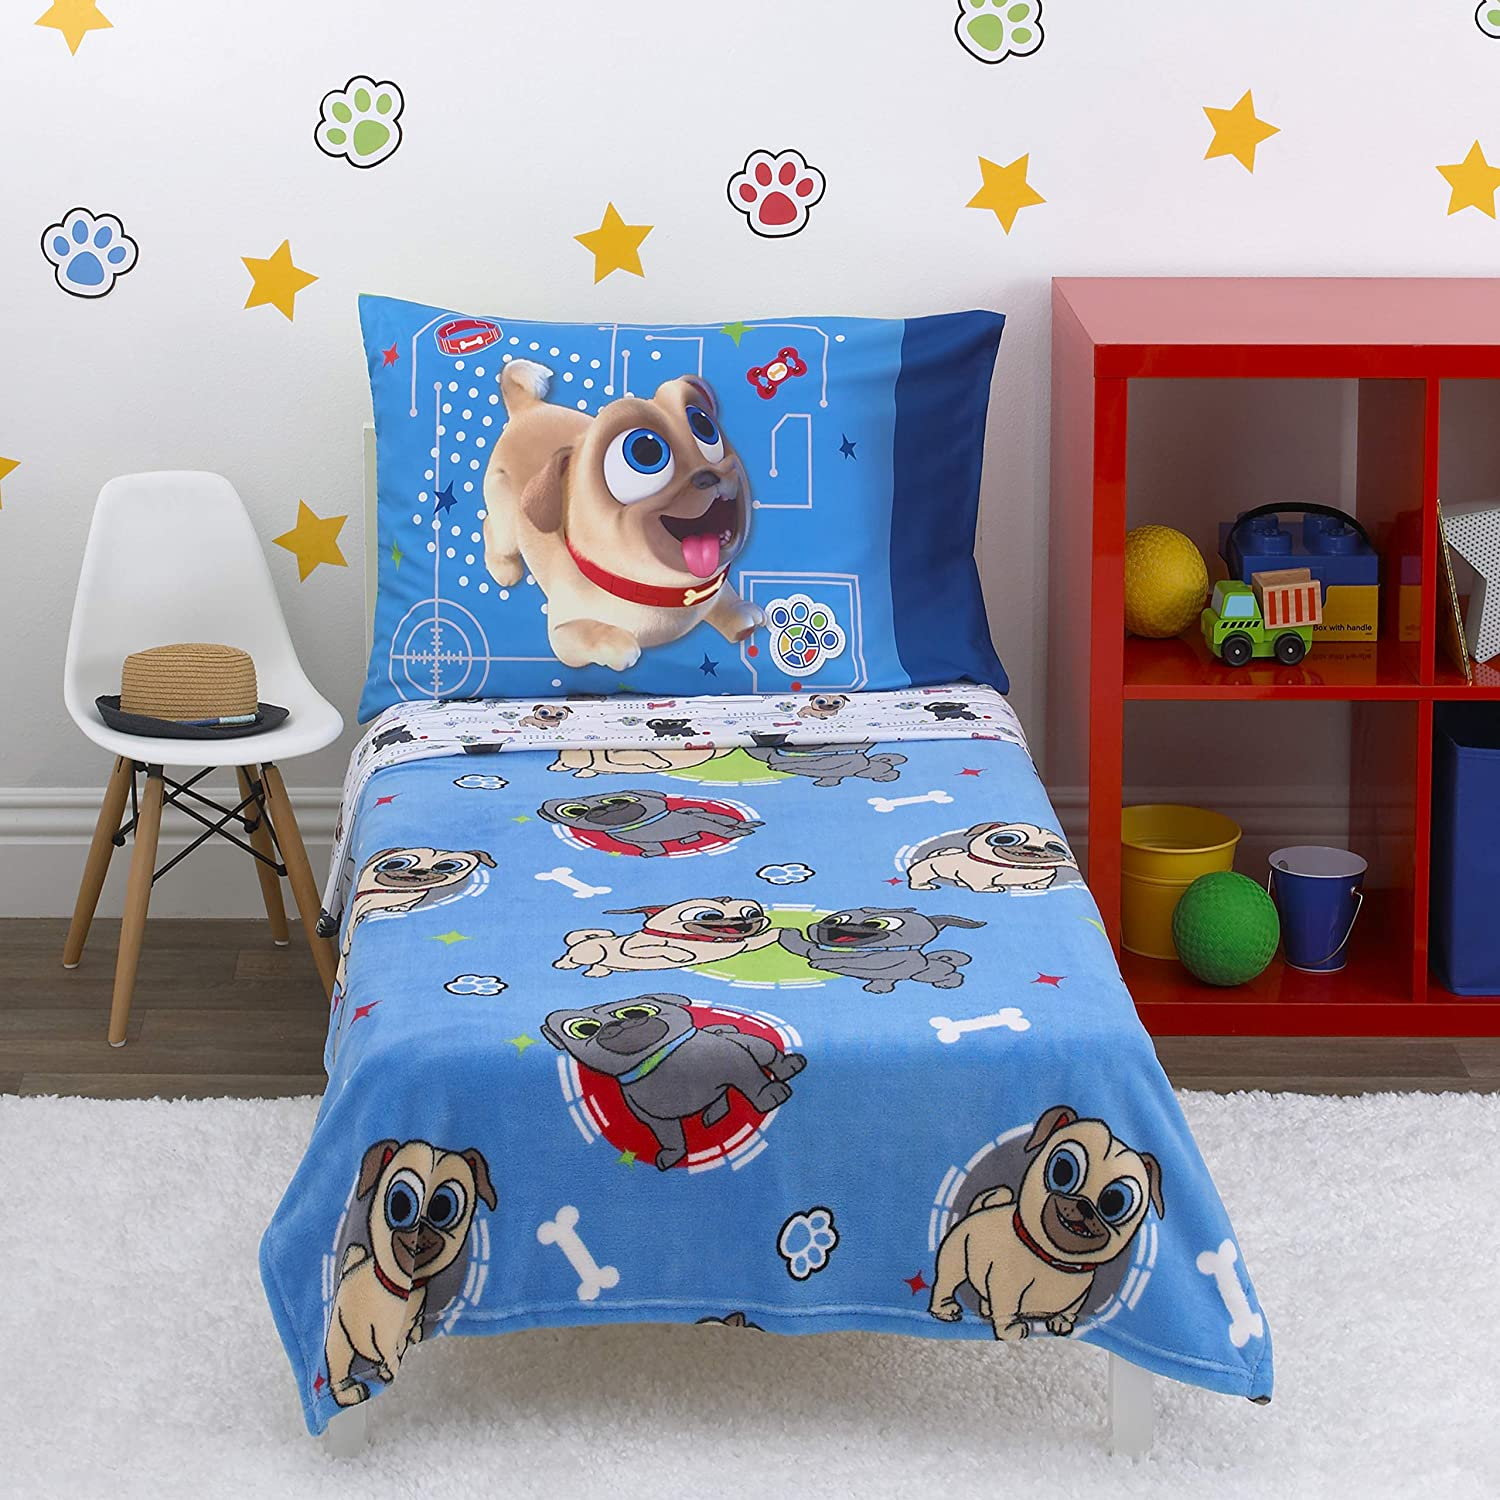 Disney Puppy Dog Pals - Puppy Pal Fun - 4 Piece Toddler Bed Set